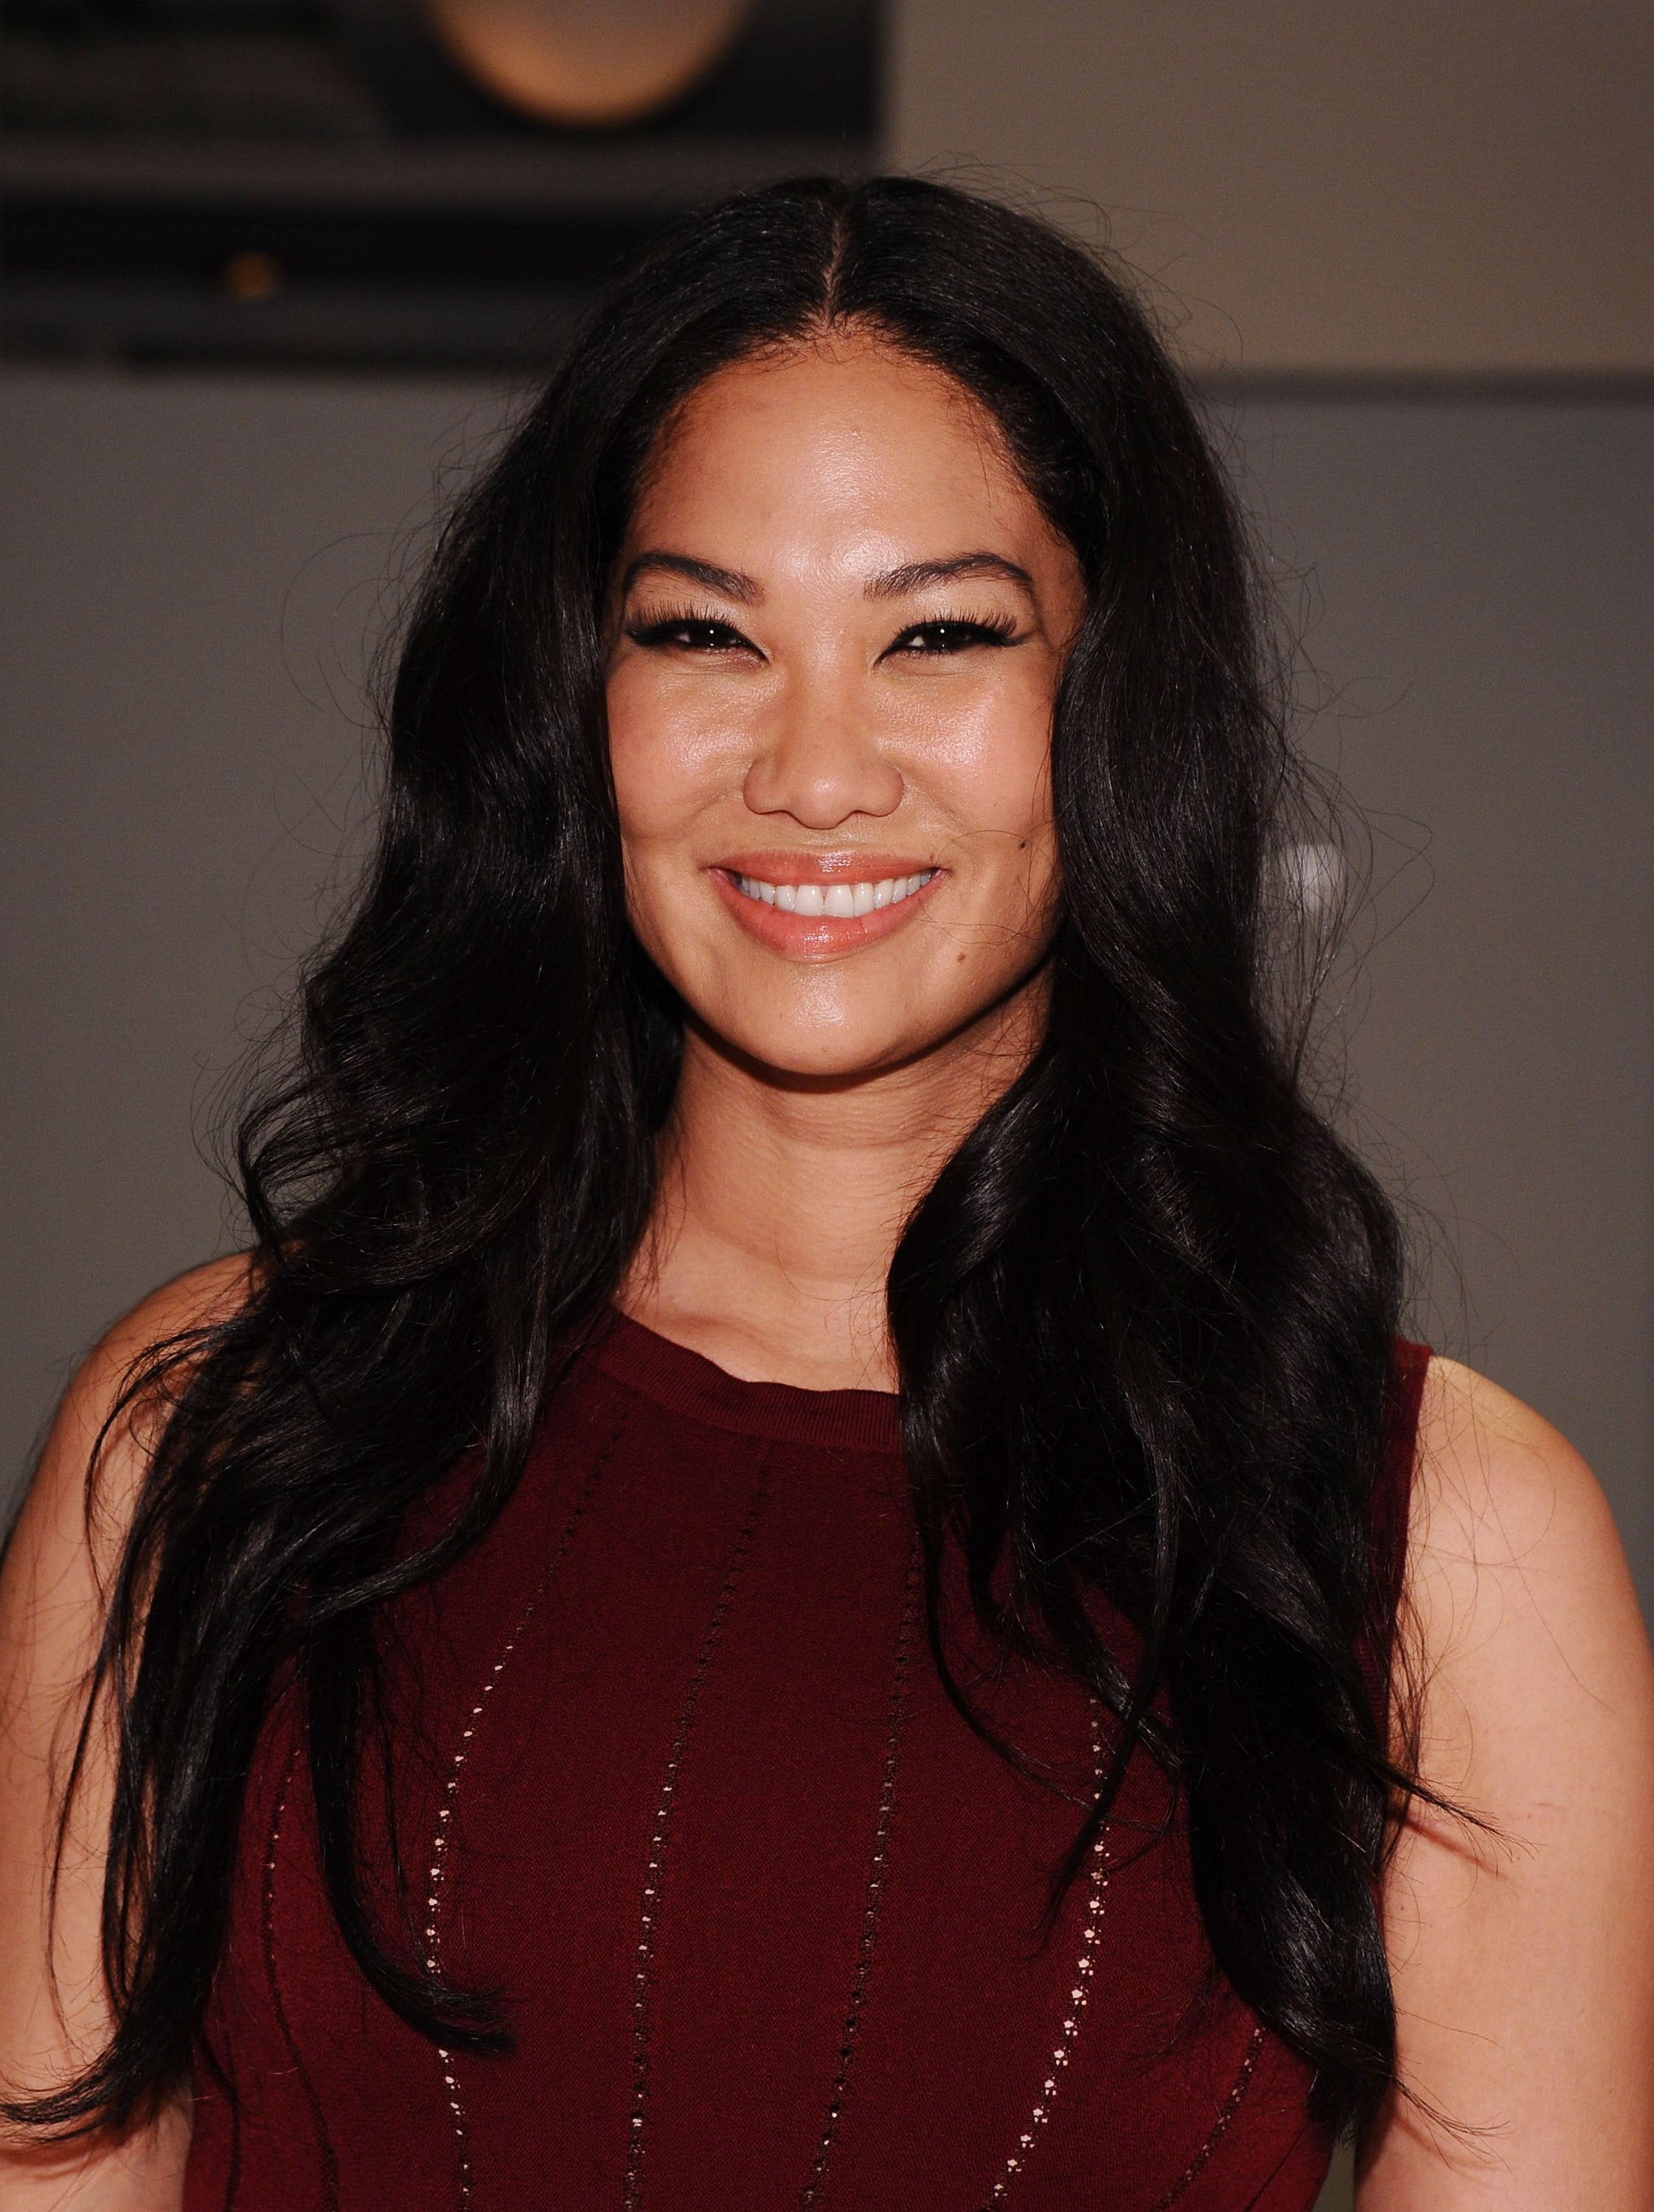 Kimora Lee Simmons at the Argyleculture By Russell Simmons fashion show on Sept. 5, 2014 in New York City | Photo: Getty Images